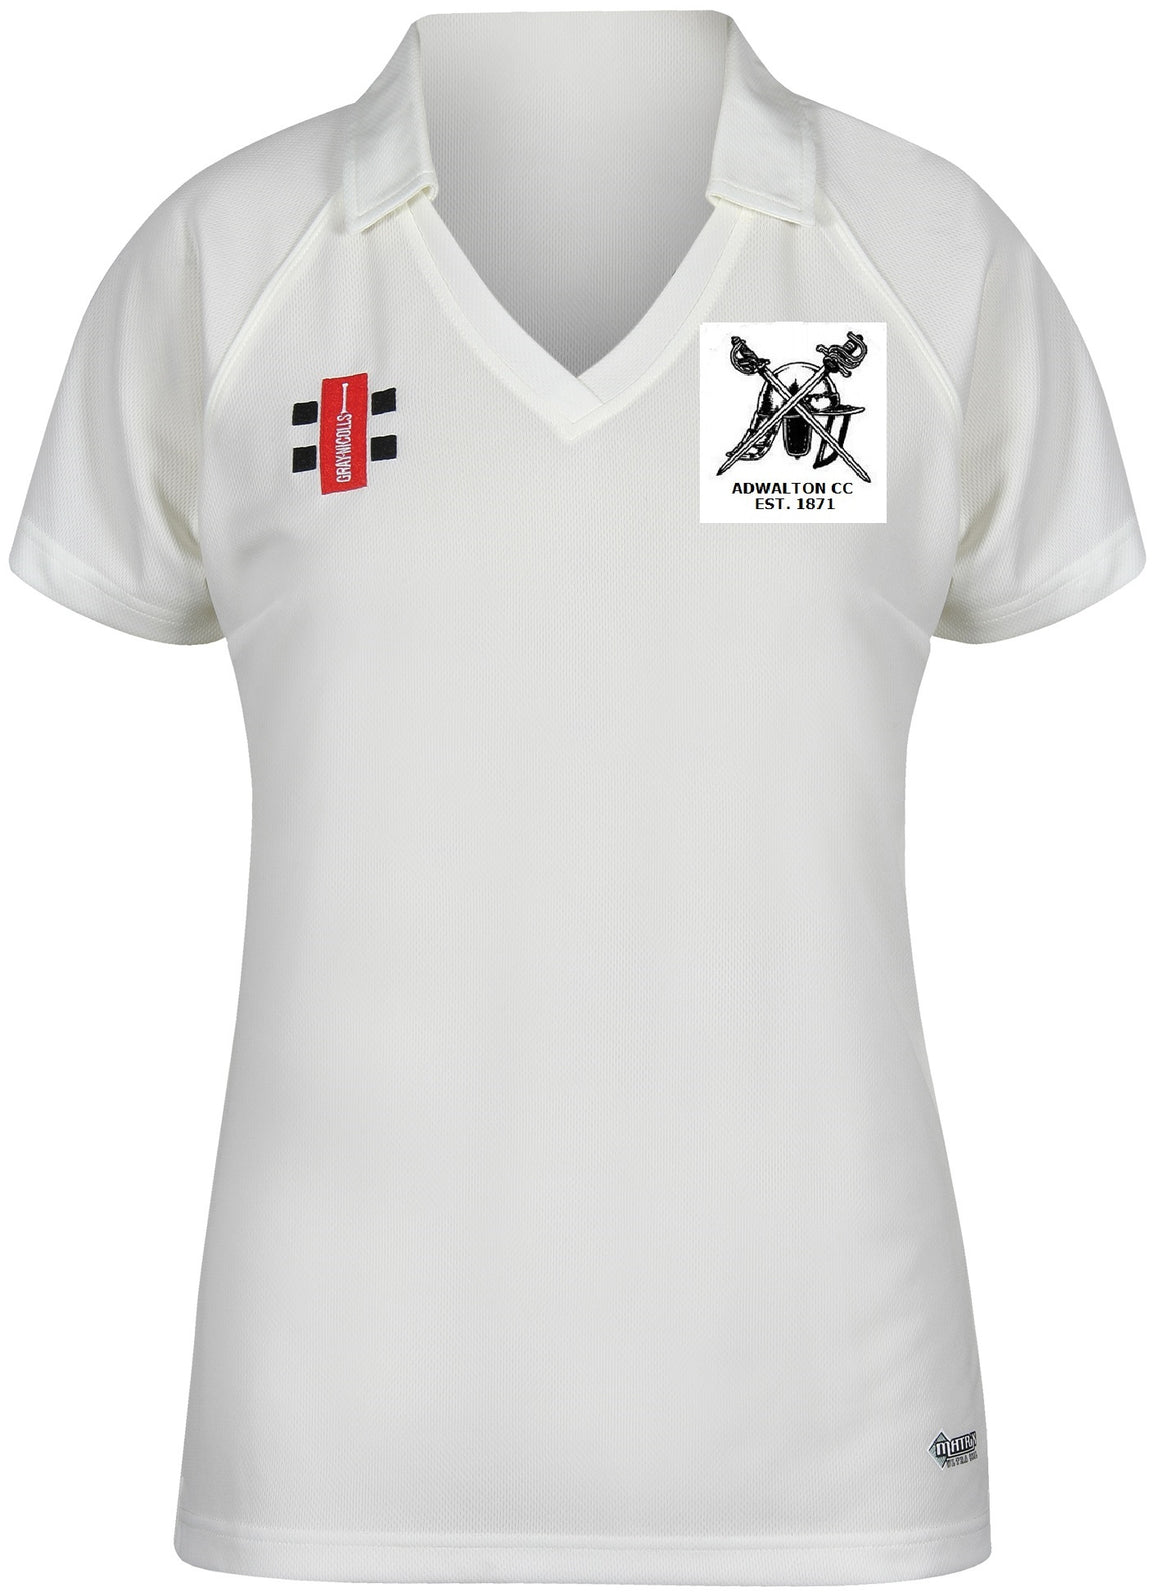 Adwalton CC Ladies Playing Shirt